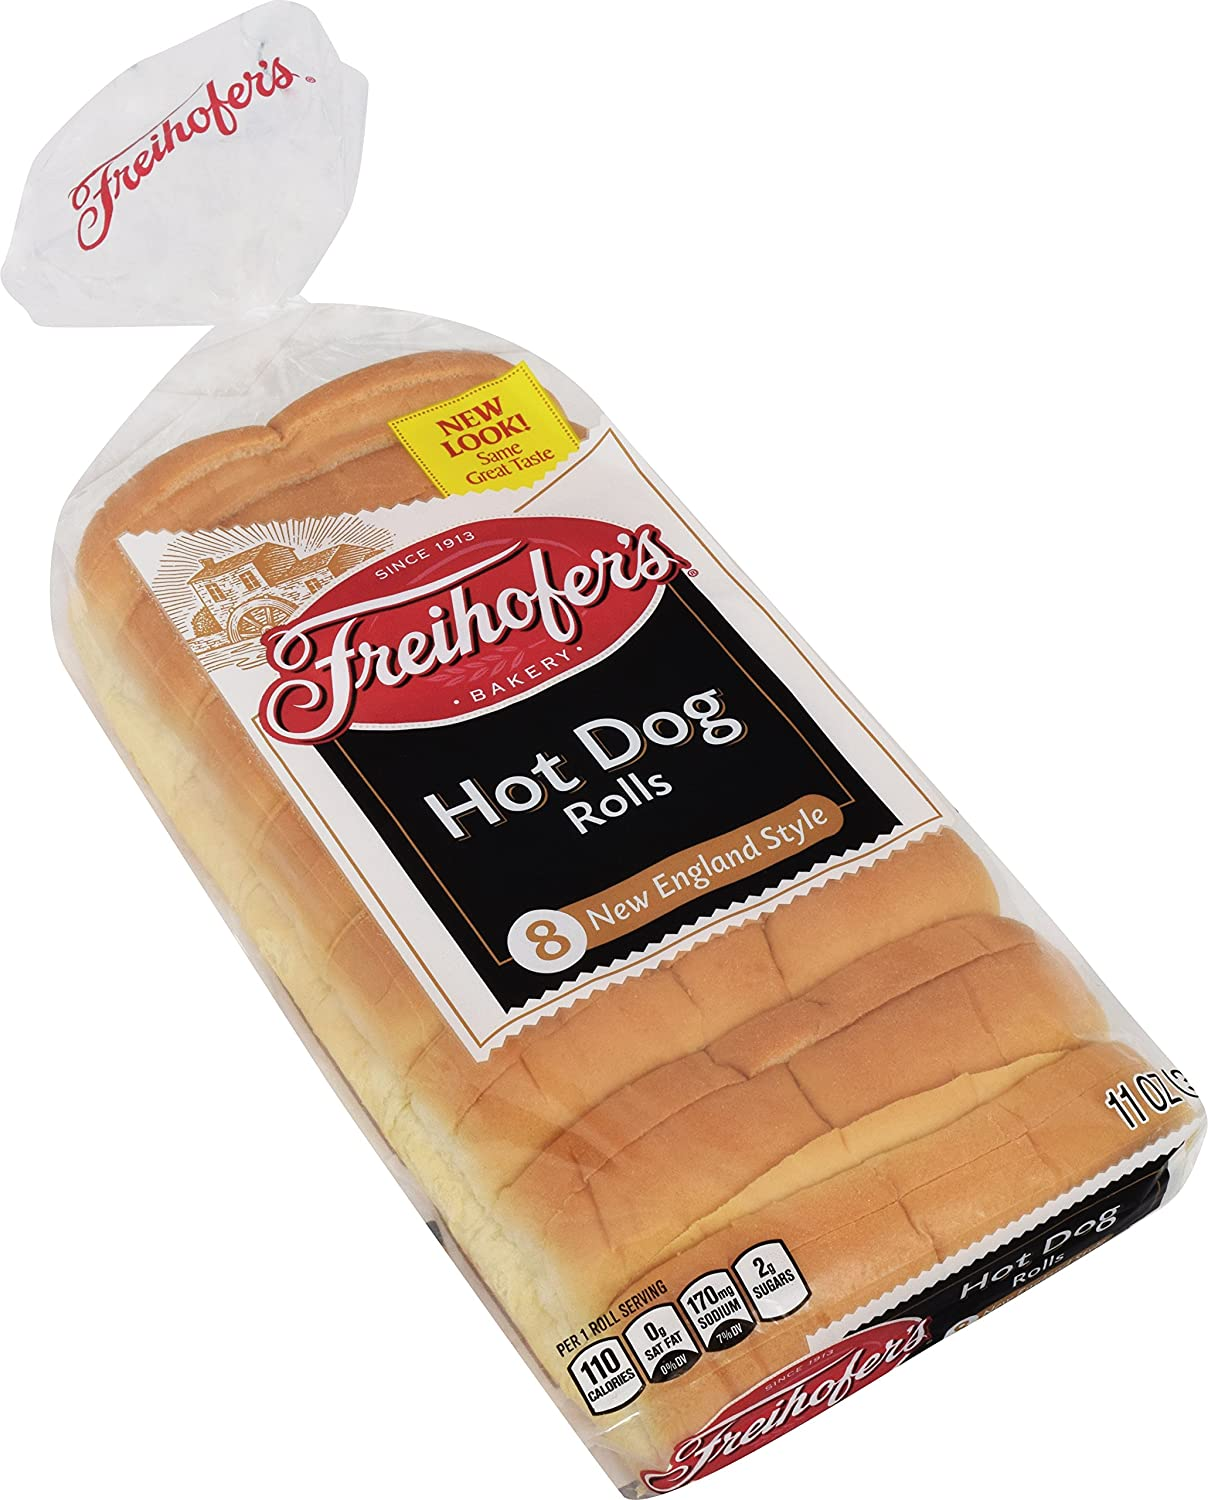 Freihofer, New England Hot Dog Rolls, 8 Ct, 11 Oz: Amazon.com: Grocery U0026  Gourmet Food